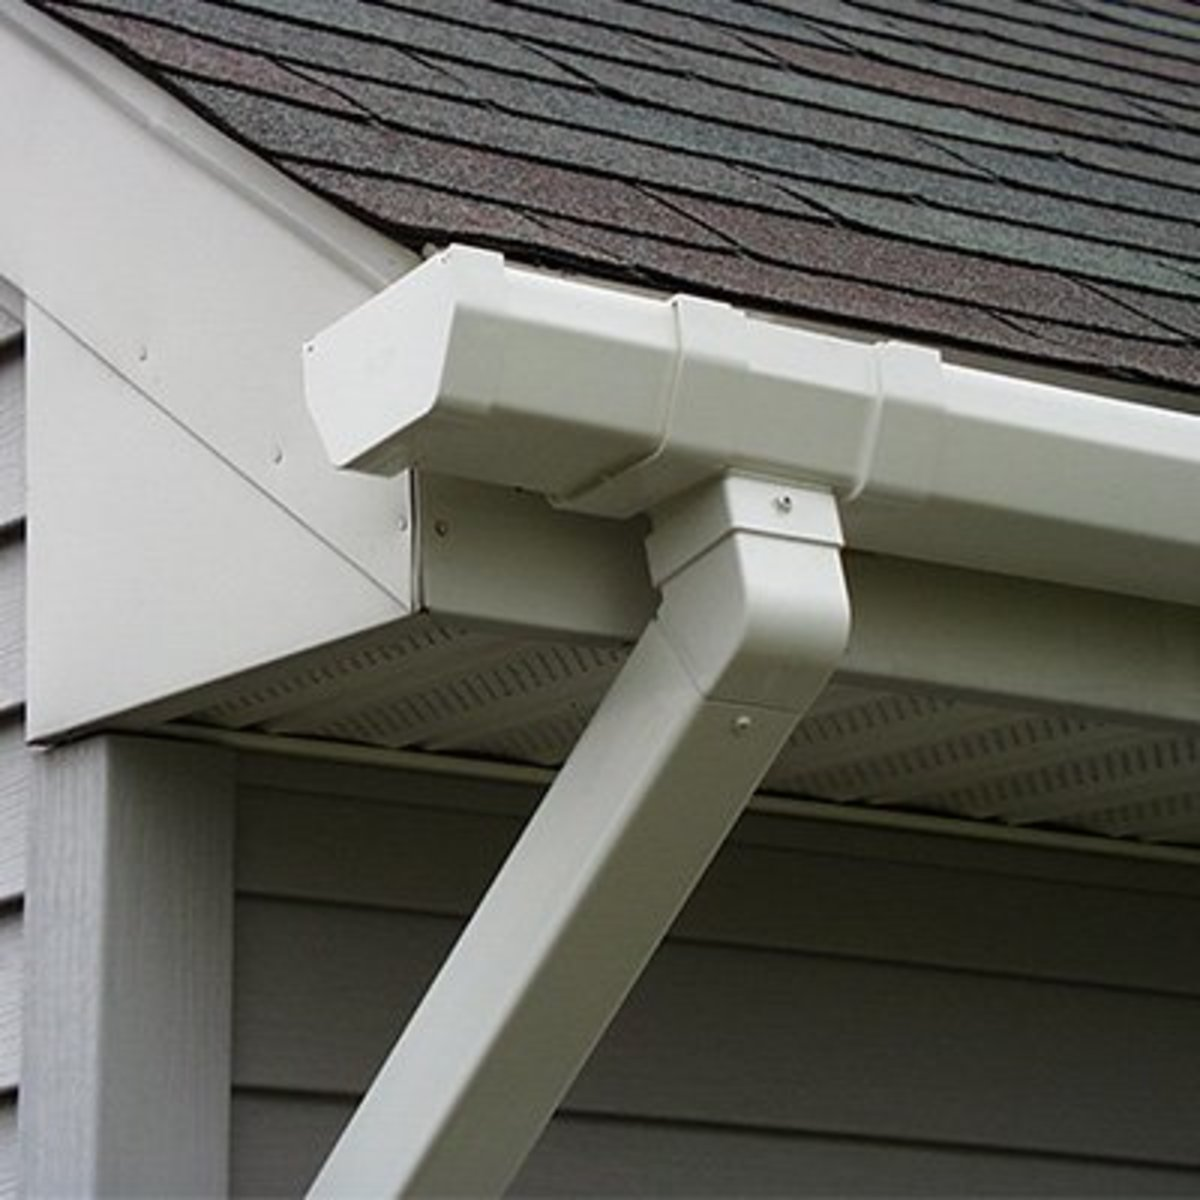 Tips for Spray Painting Gutters and Downspouts